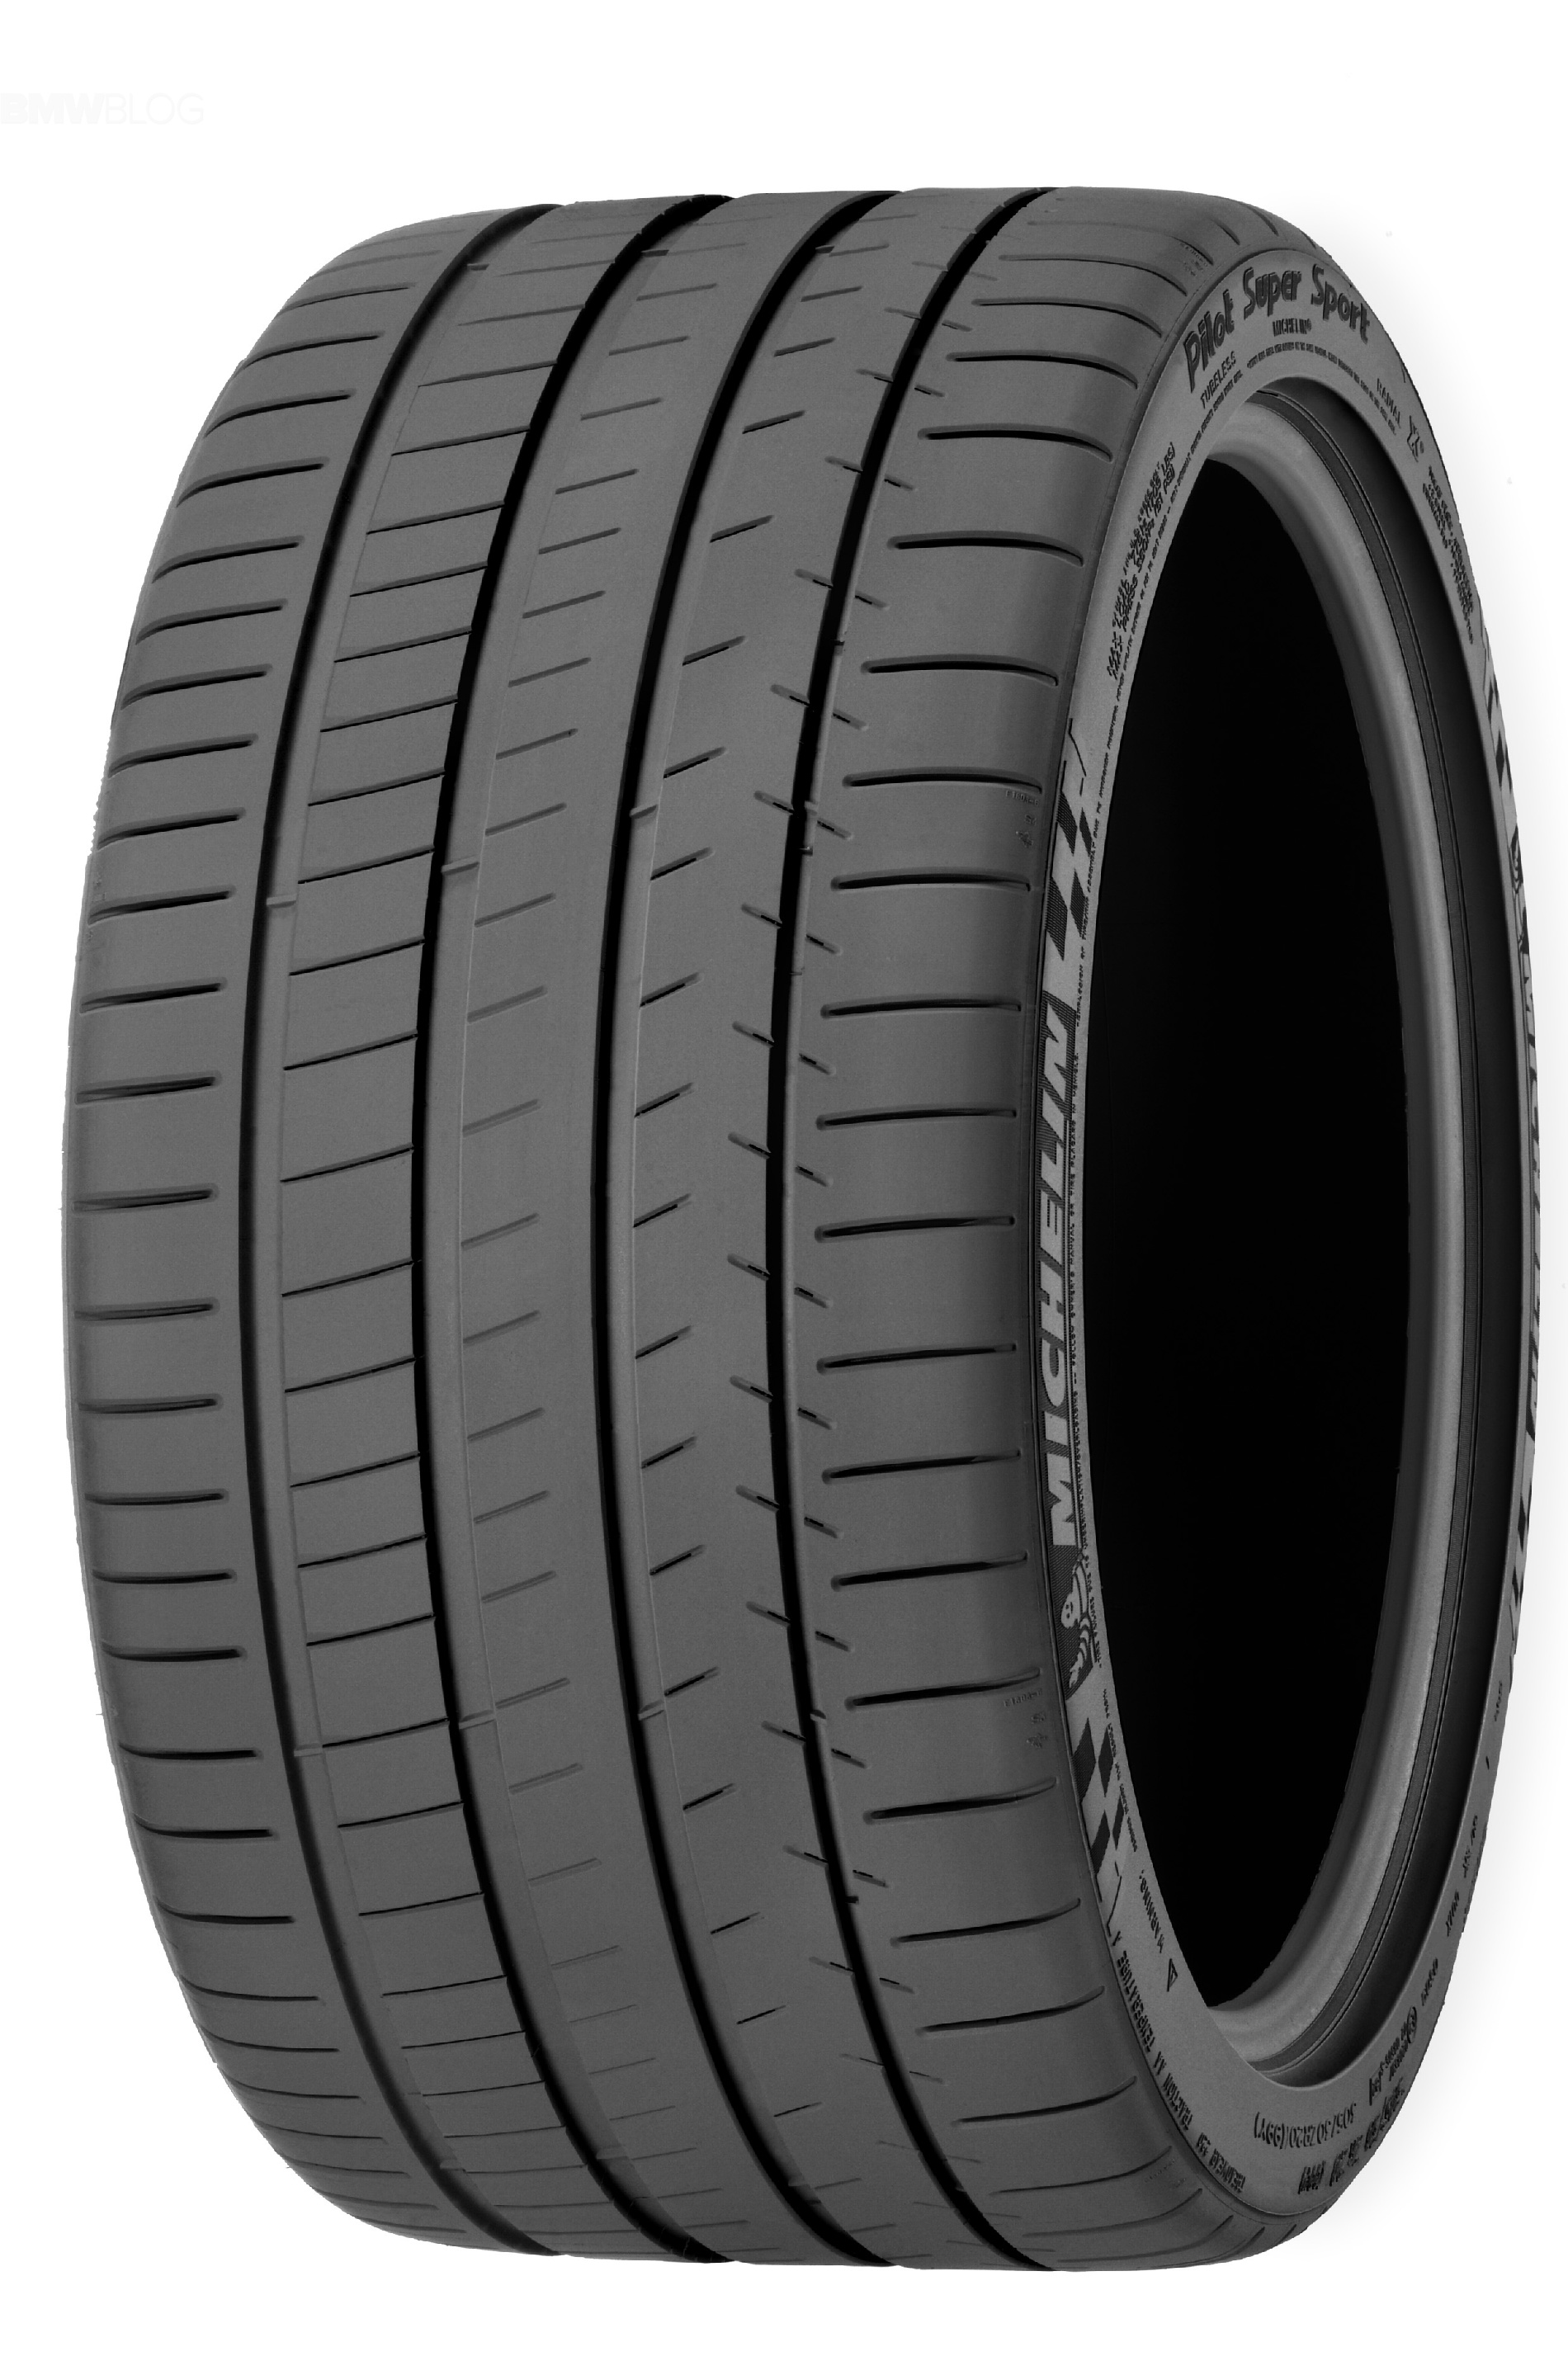 летние шины Michelin Pilot Super Sport 275/40 R19 105/Y